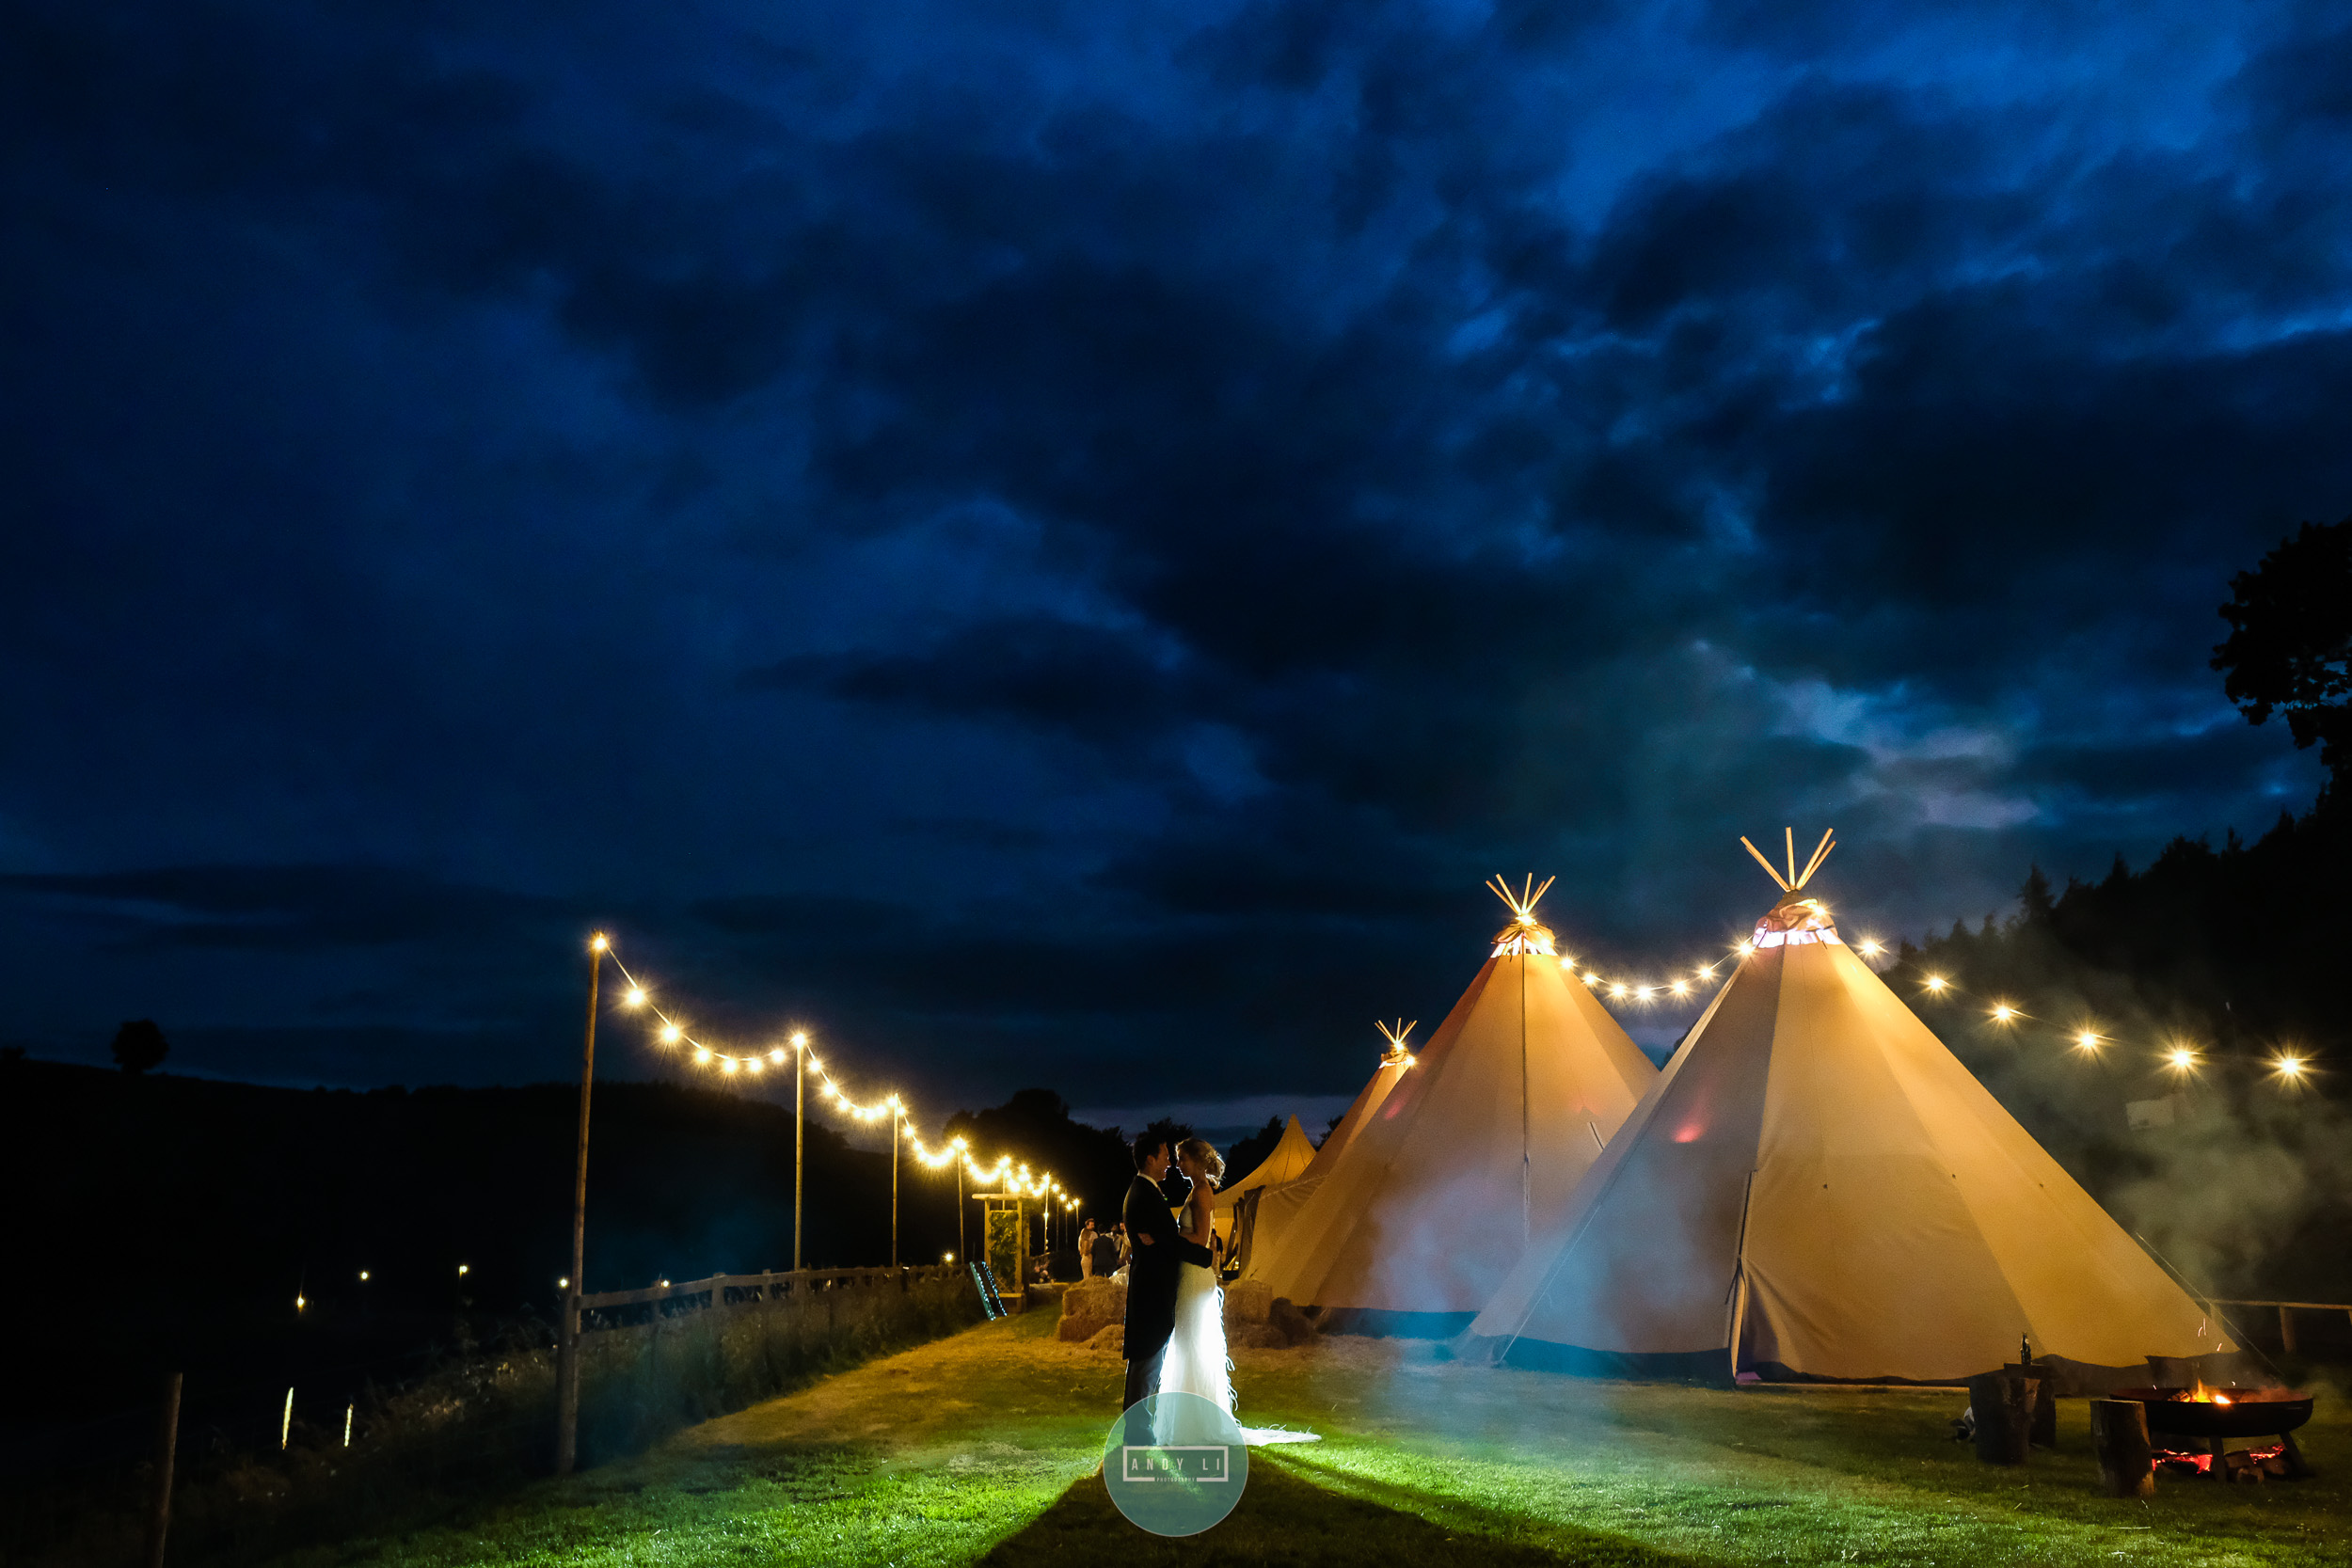 Tipi Wedding at Night